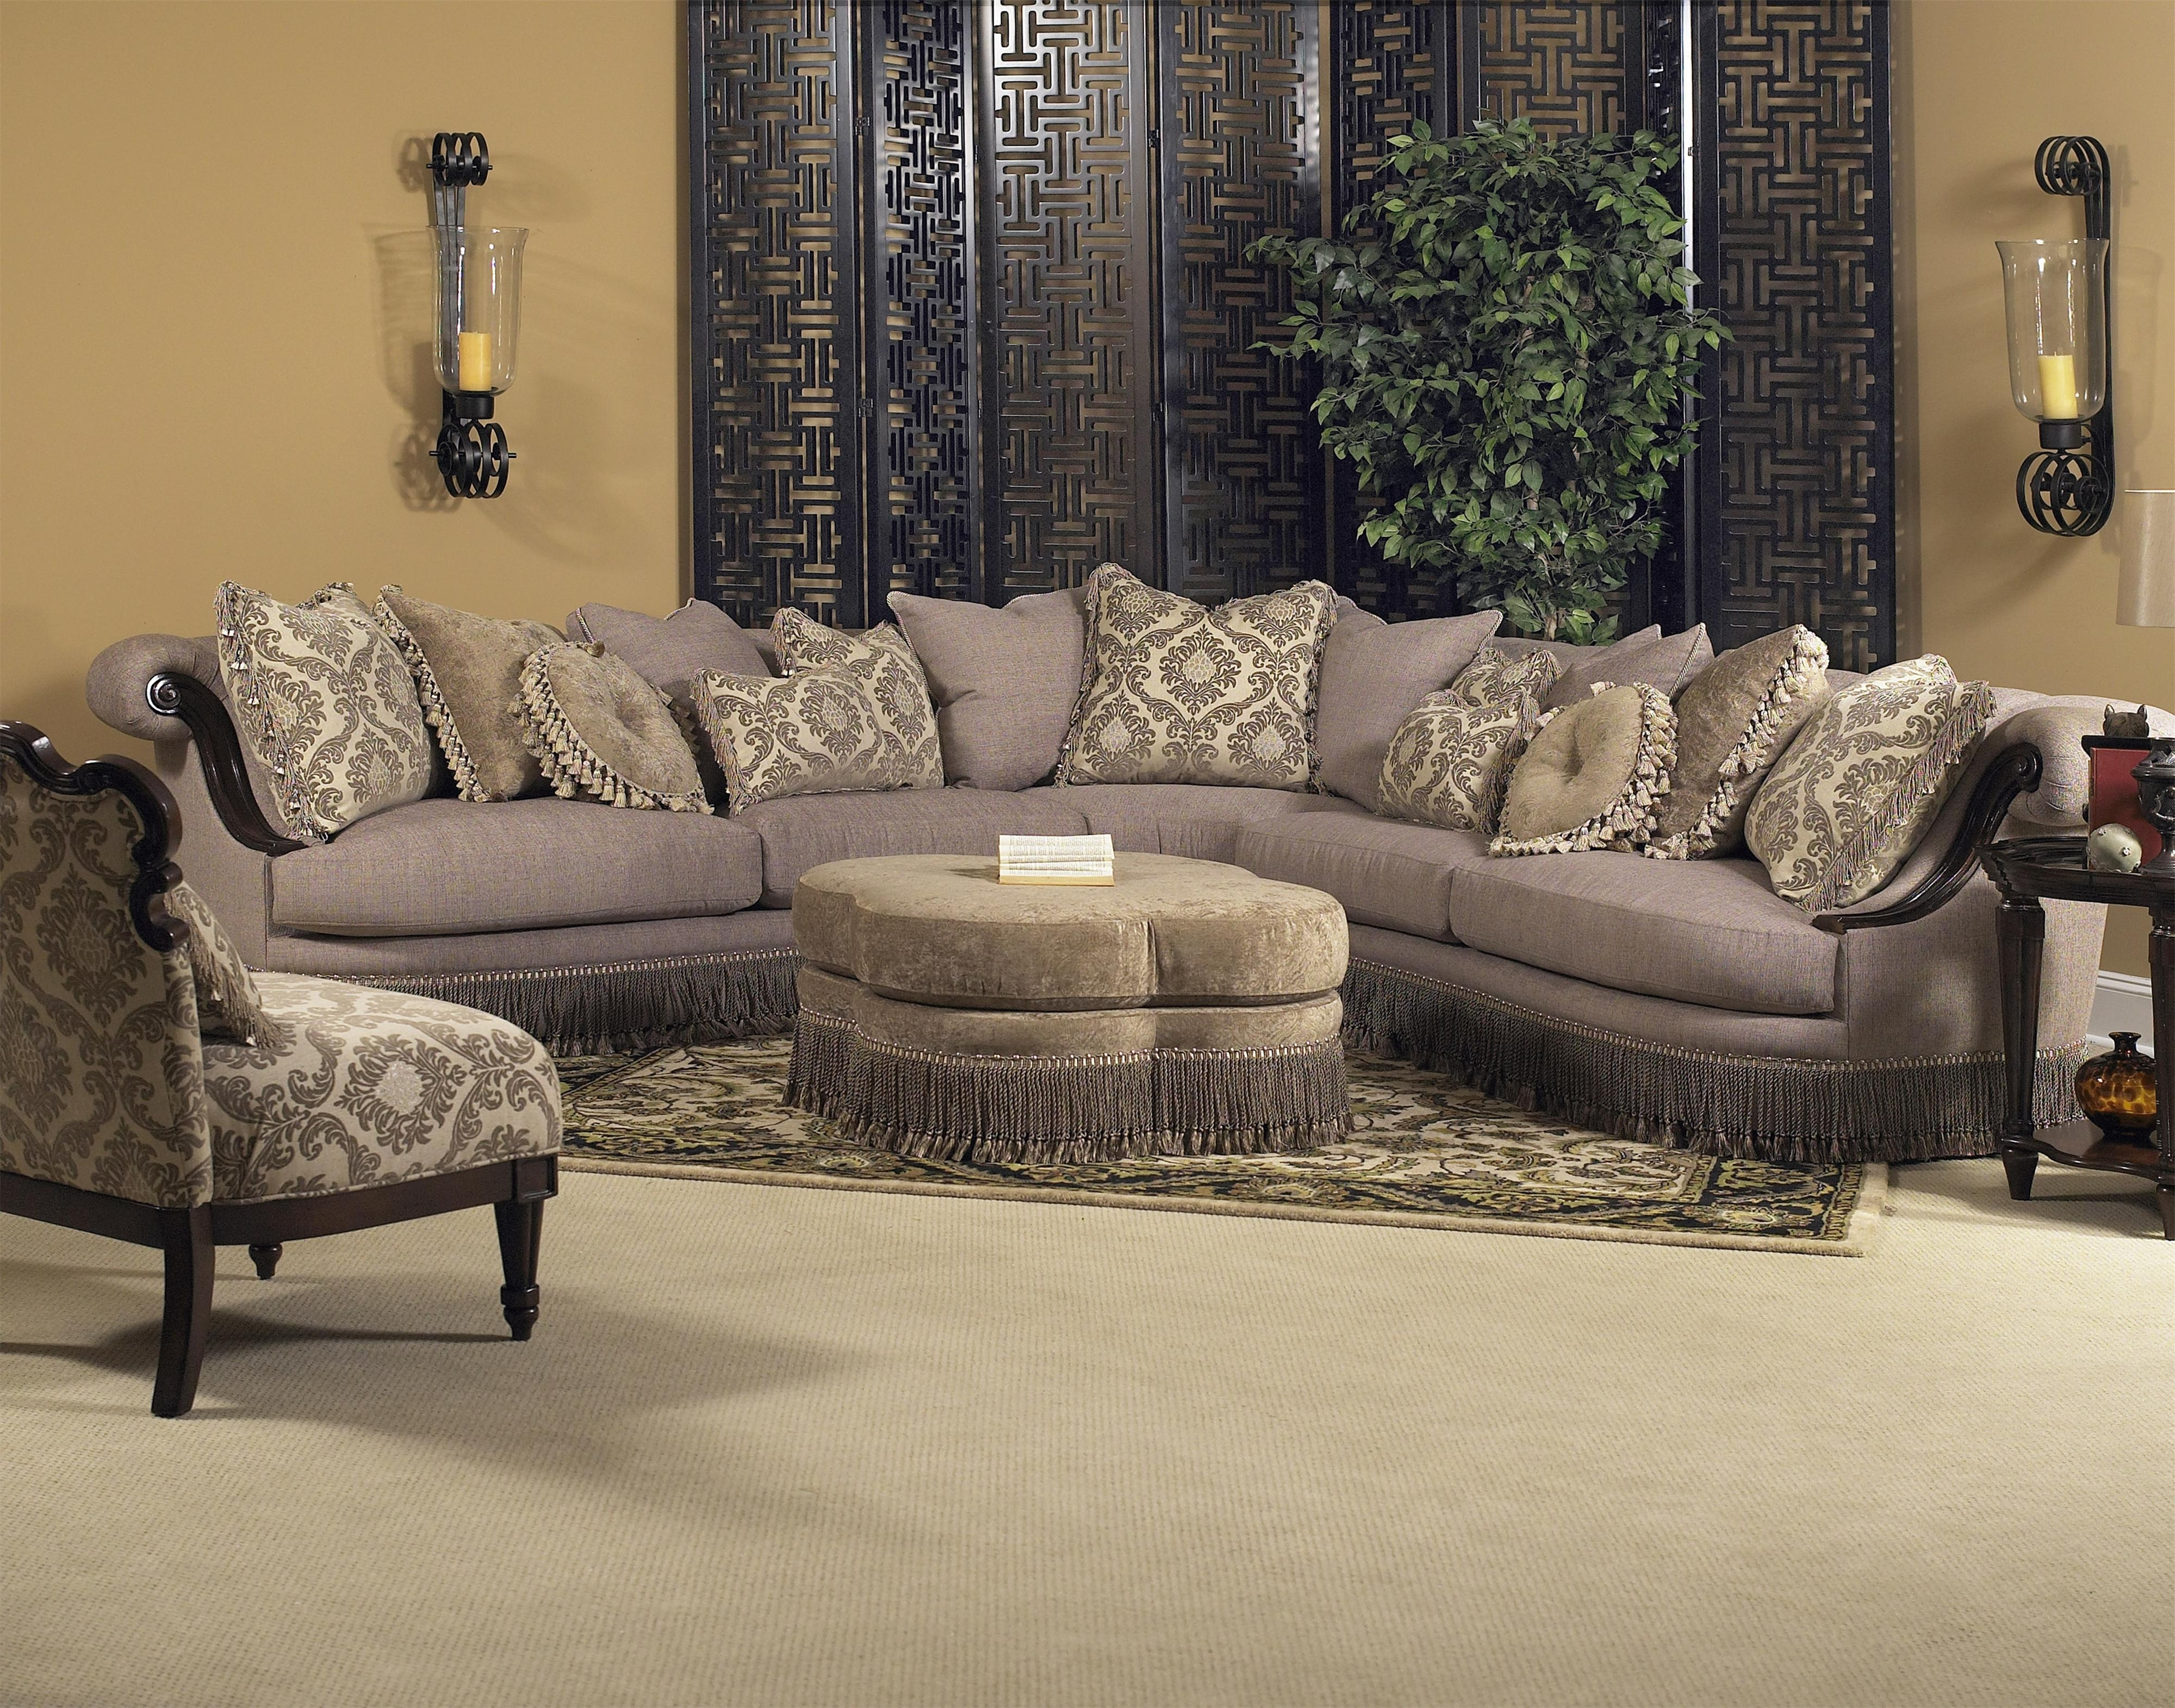 Most Recent Royal Furniture Sectional Sofas In Classic Wellingsley Sectionalfairmont Designs Available At (View 2 of 20)